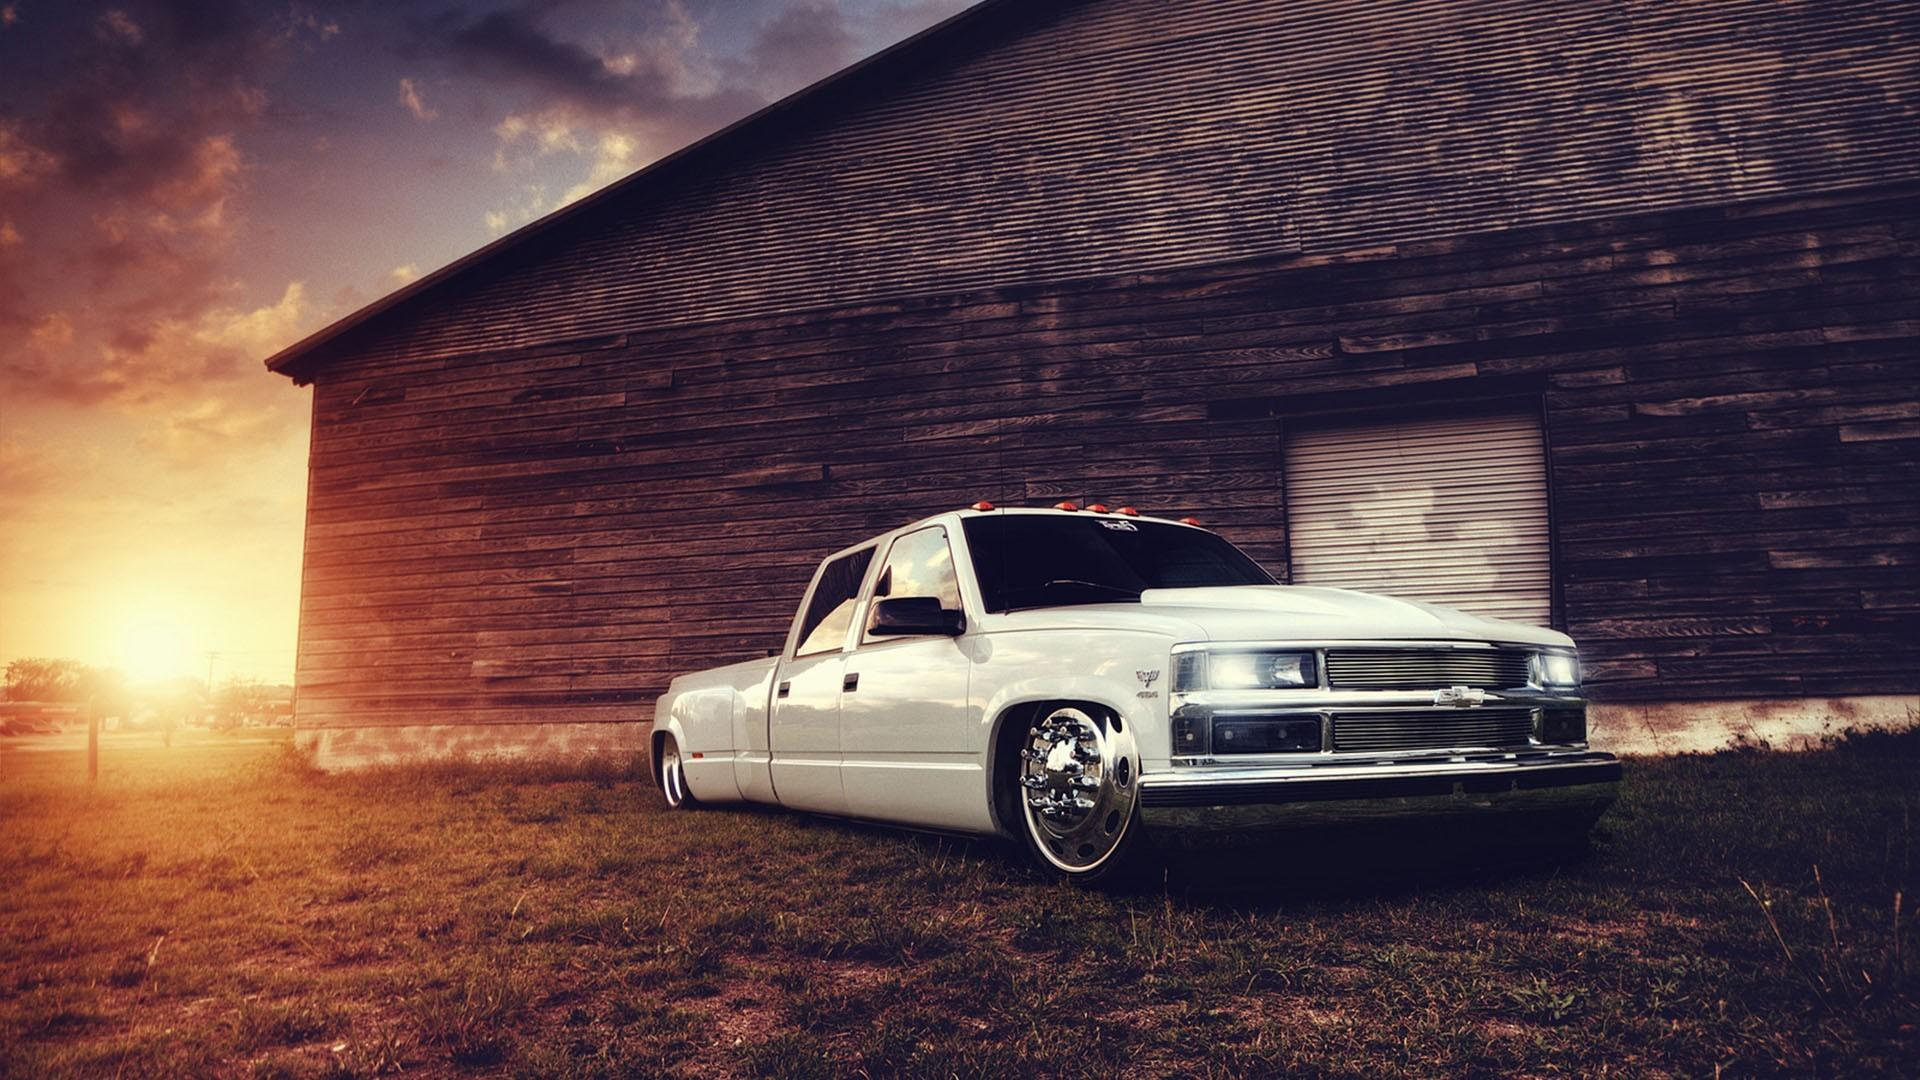 Low Truck Wallpapers Wallpaper Cave